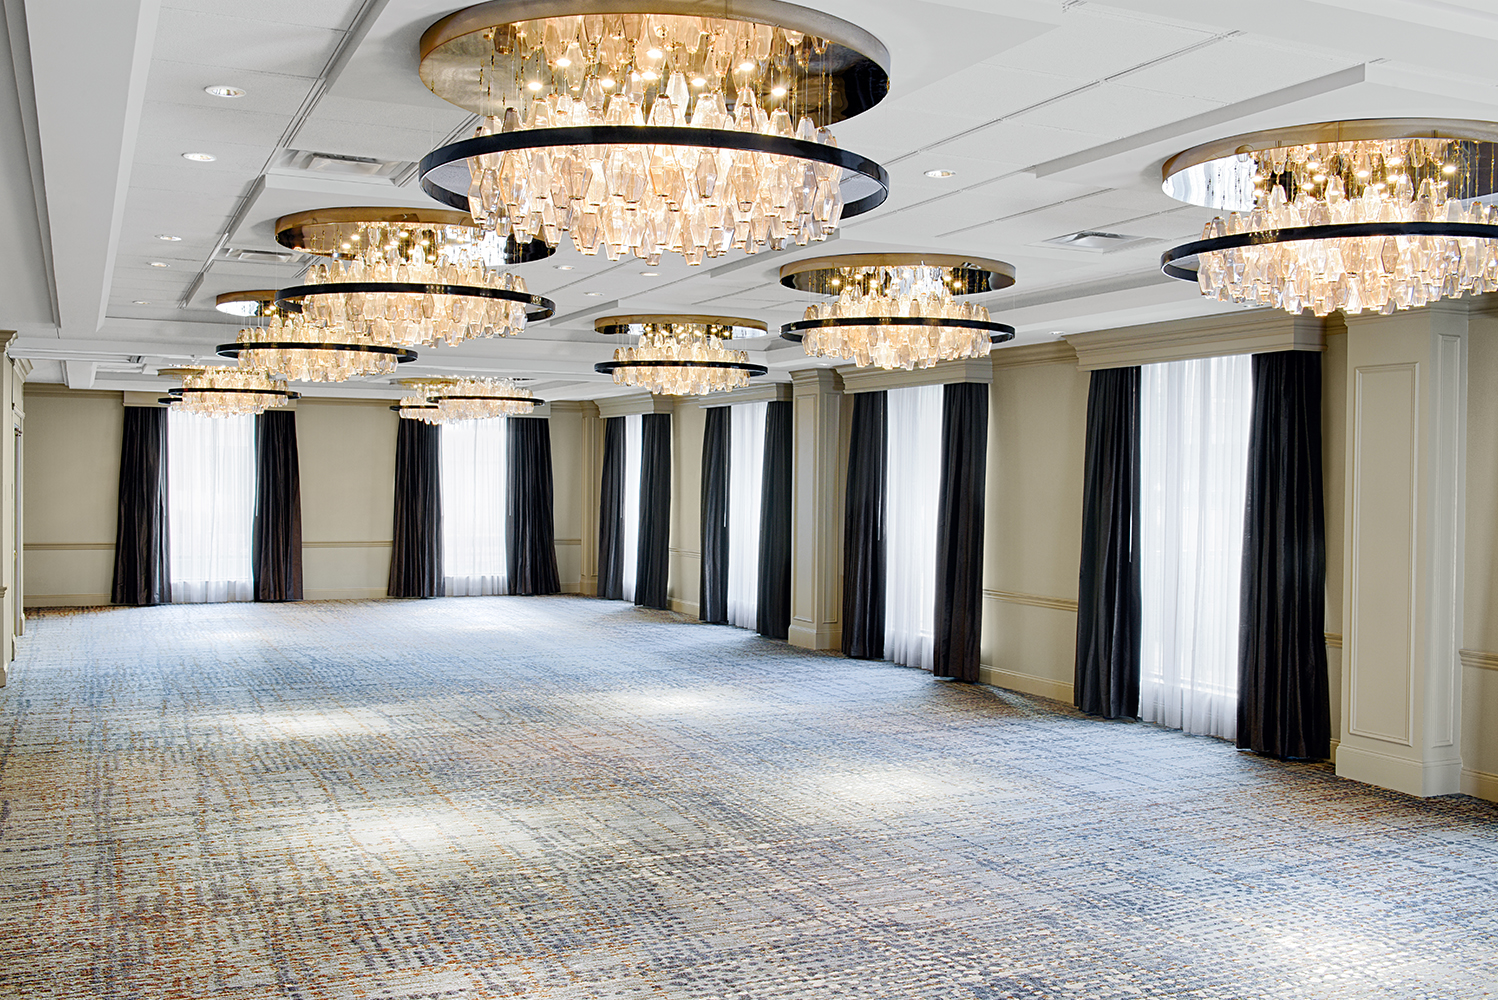 The pre-function gathering area now has seating groups and nesting tables, while the ballroom was enhanced with new chandeliers.